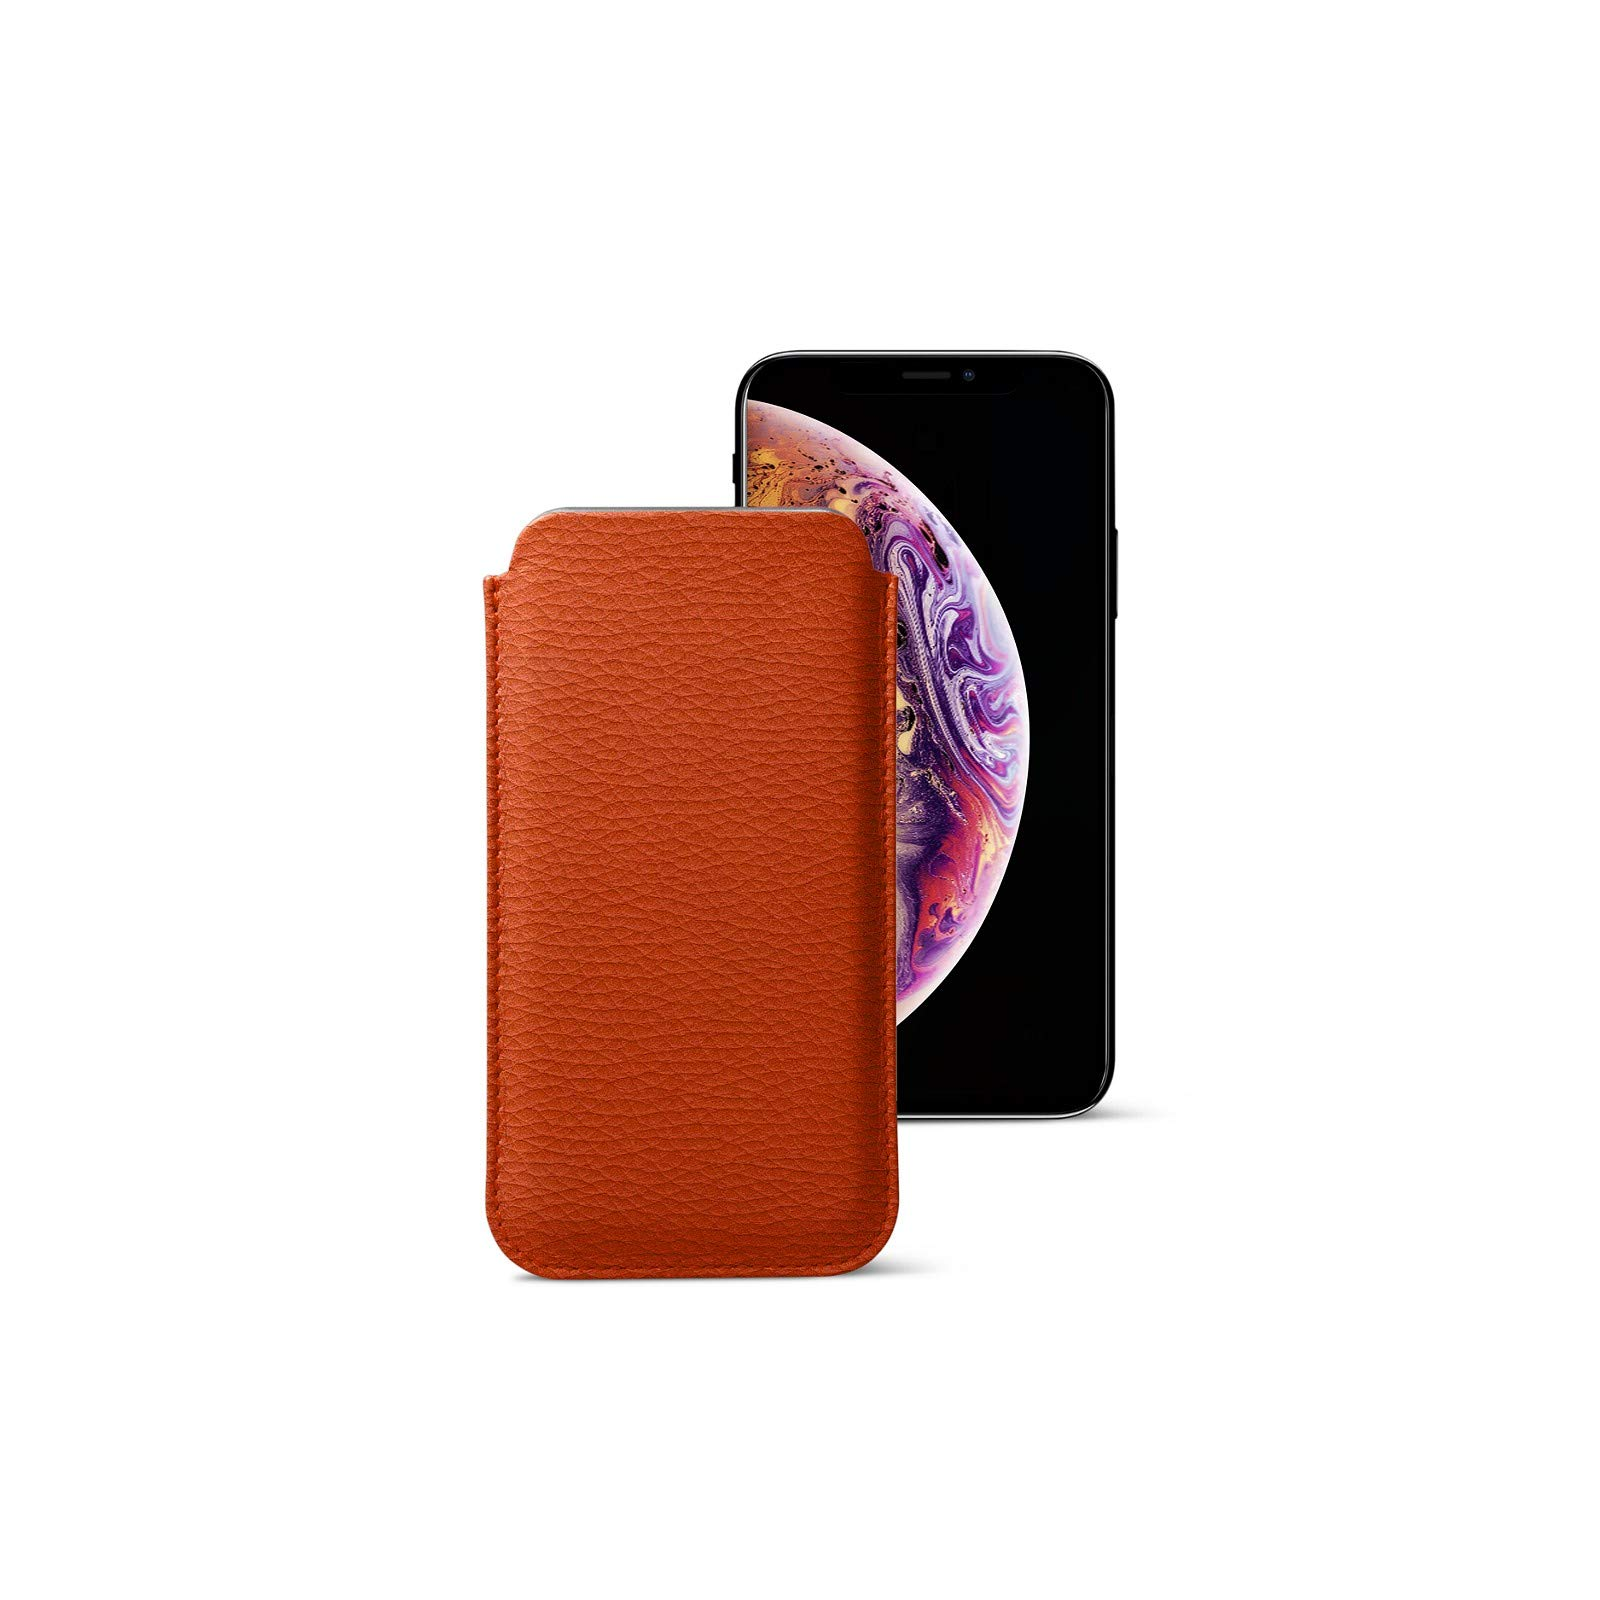 Lucrin - Classic Case Cover Sleeve Compatible with iPhone 11 Pro/iPhone Xs/iPhone X and Wireless Charging - Orange - Granulated Leather by Lucrin